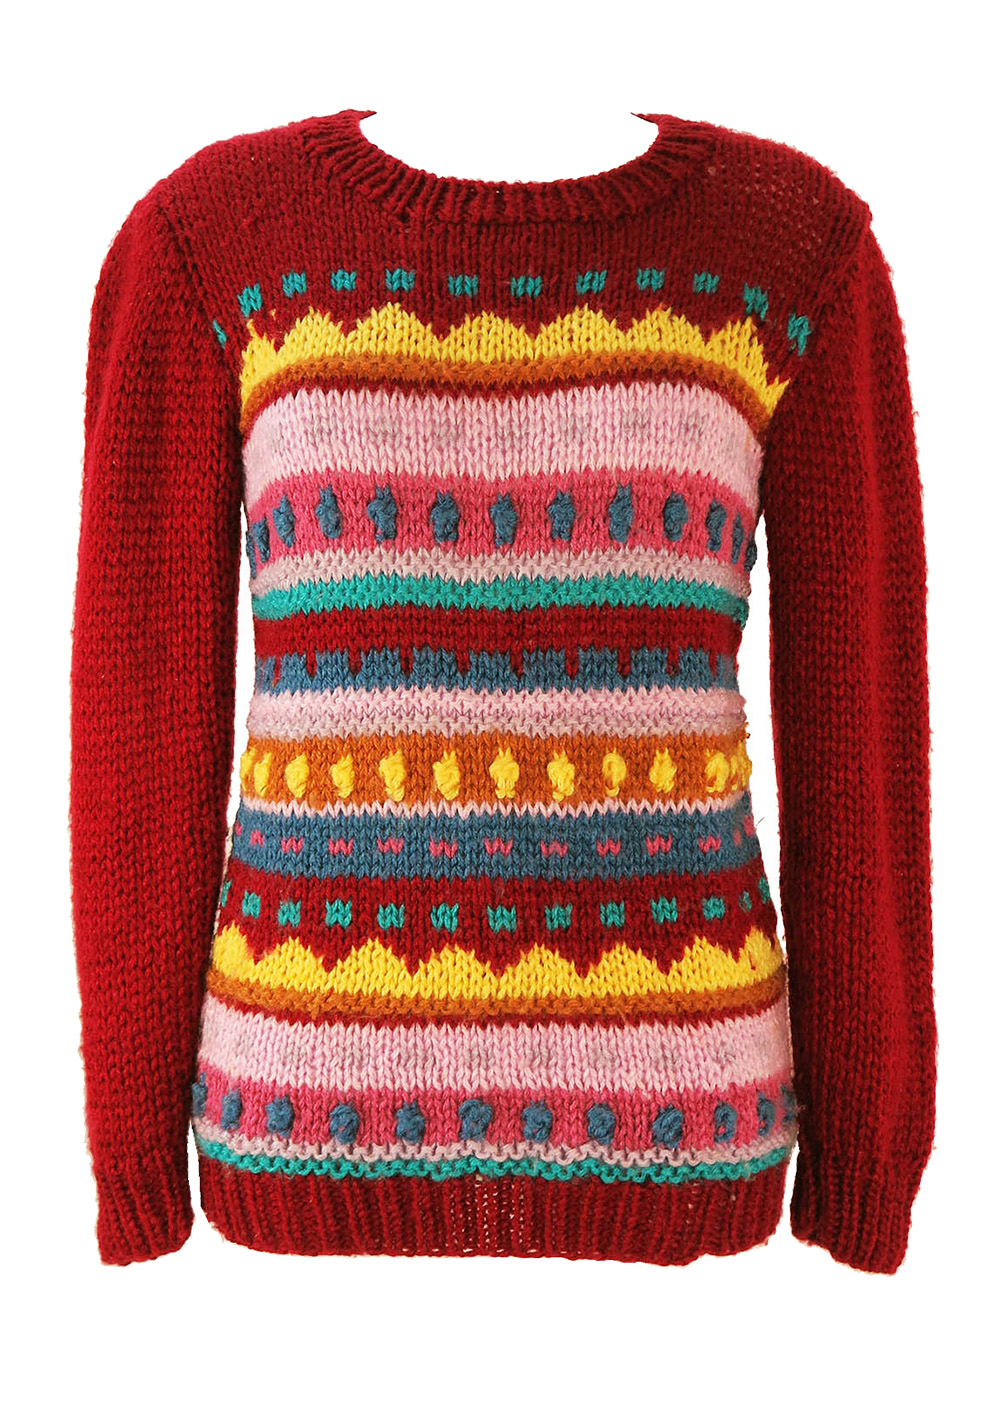 Knit Jumper Pattern Burgundy Knit Jumper With Multi Colour Striped Pattern S Reign